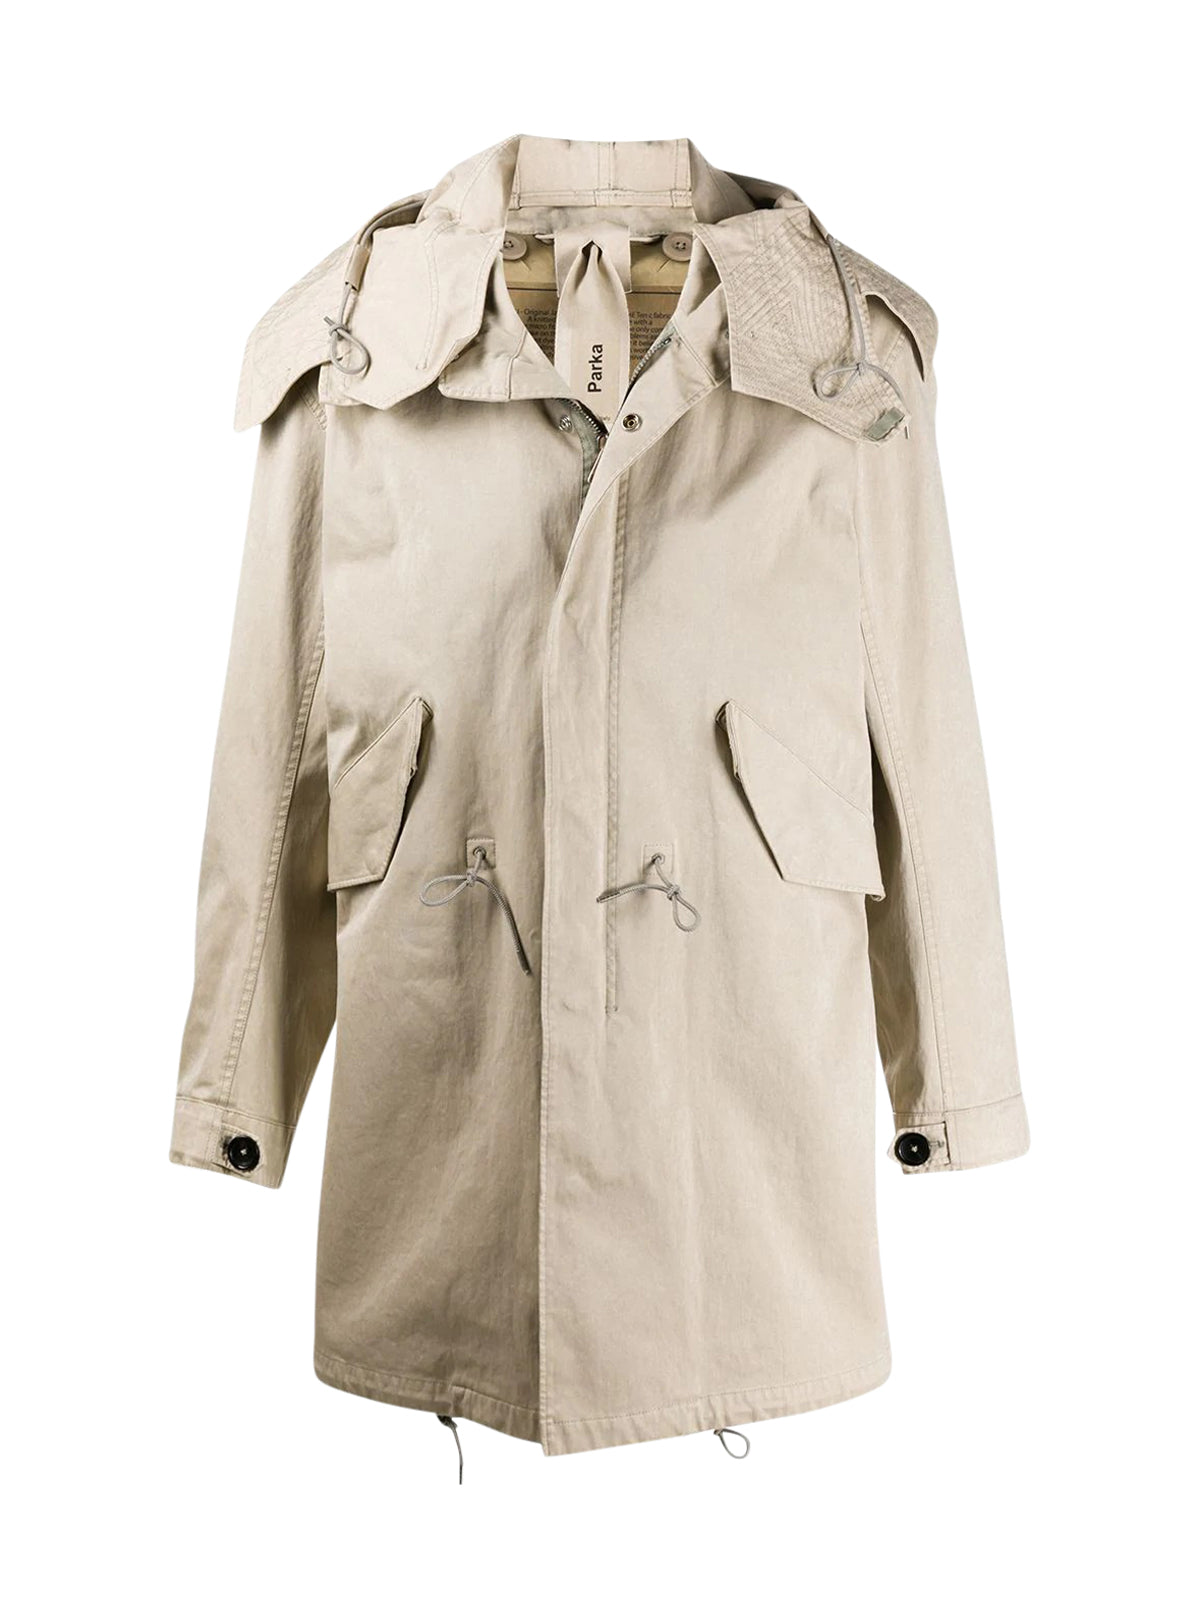 long-sleeve parka coat